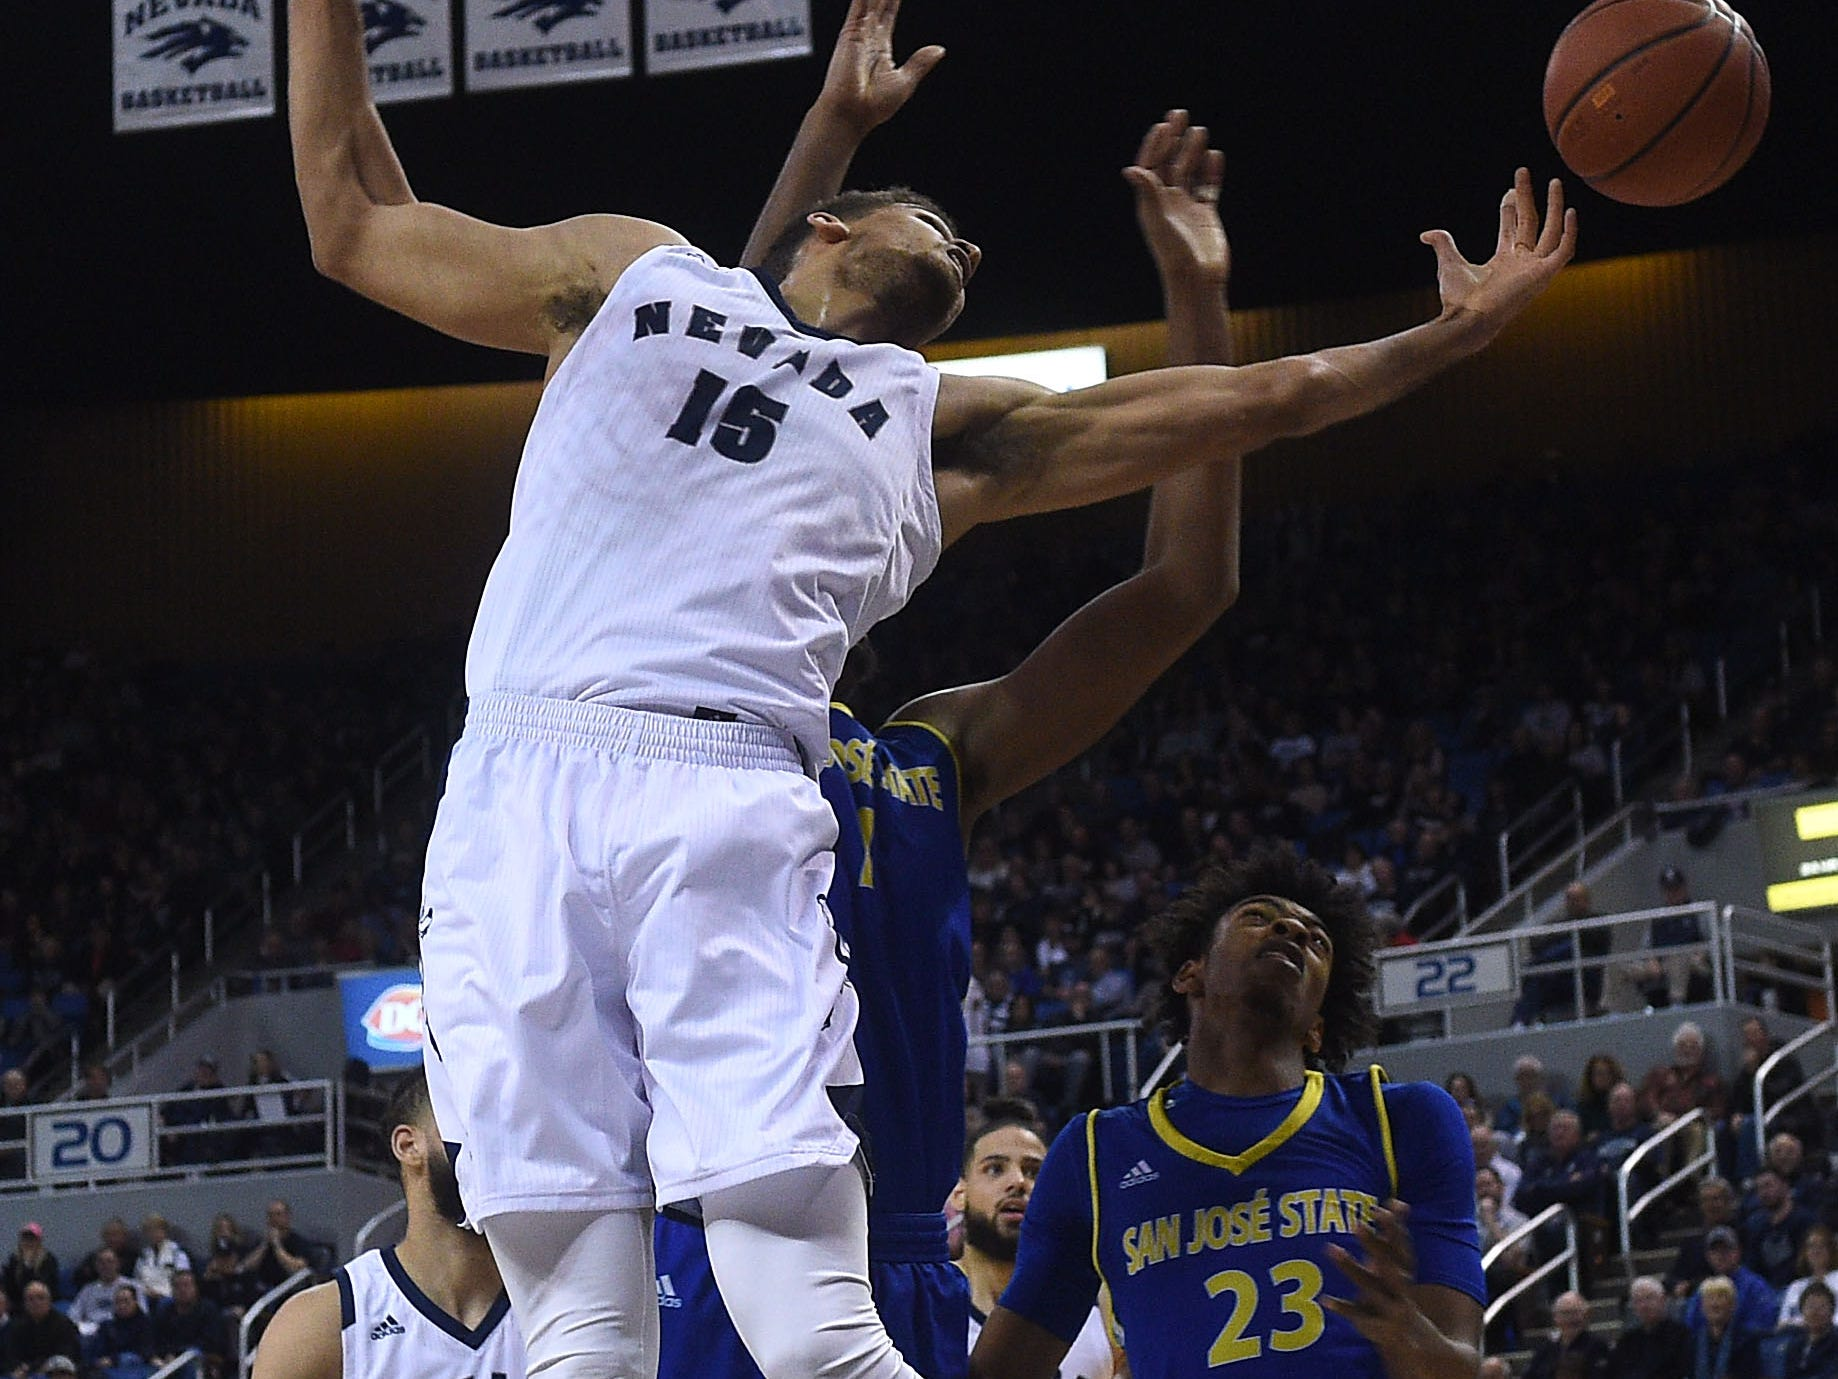 Nevada's Trey Porter tries to grab a rebound while taking on San Jose State during their basketball game at Lawlor Events Center in Reno on Jan. 9, 2019.